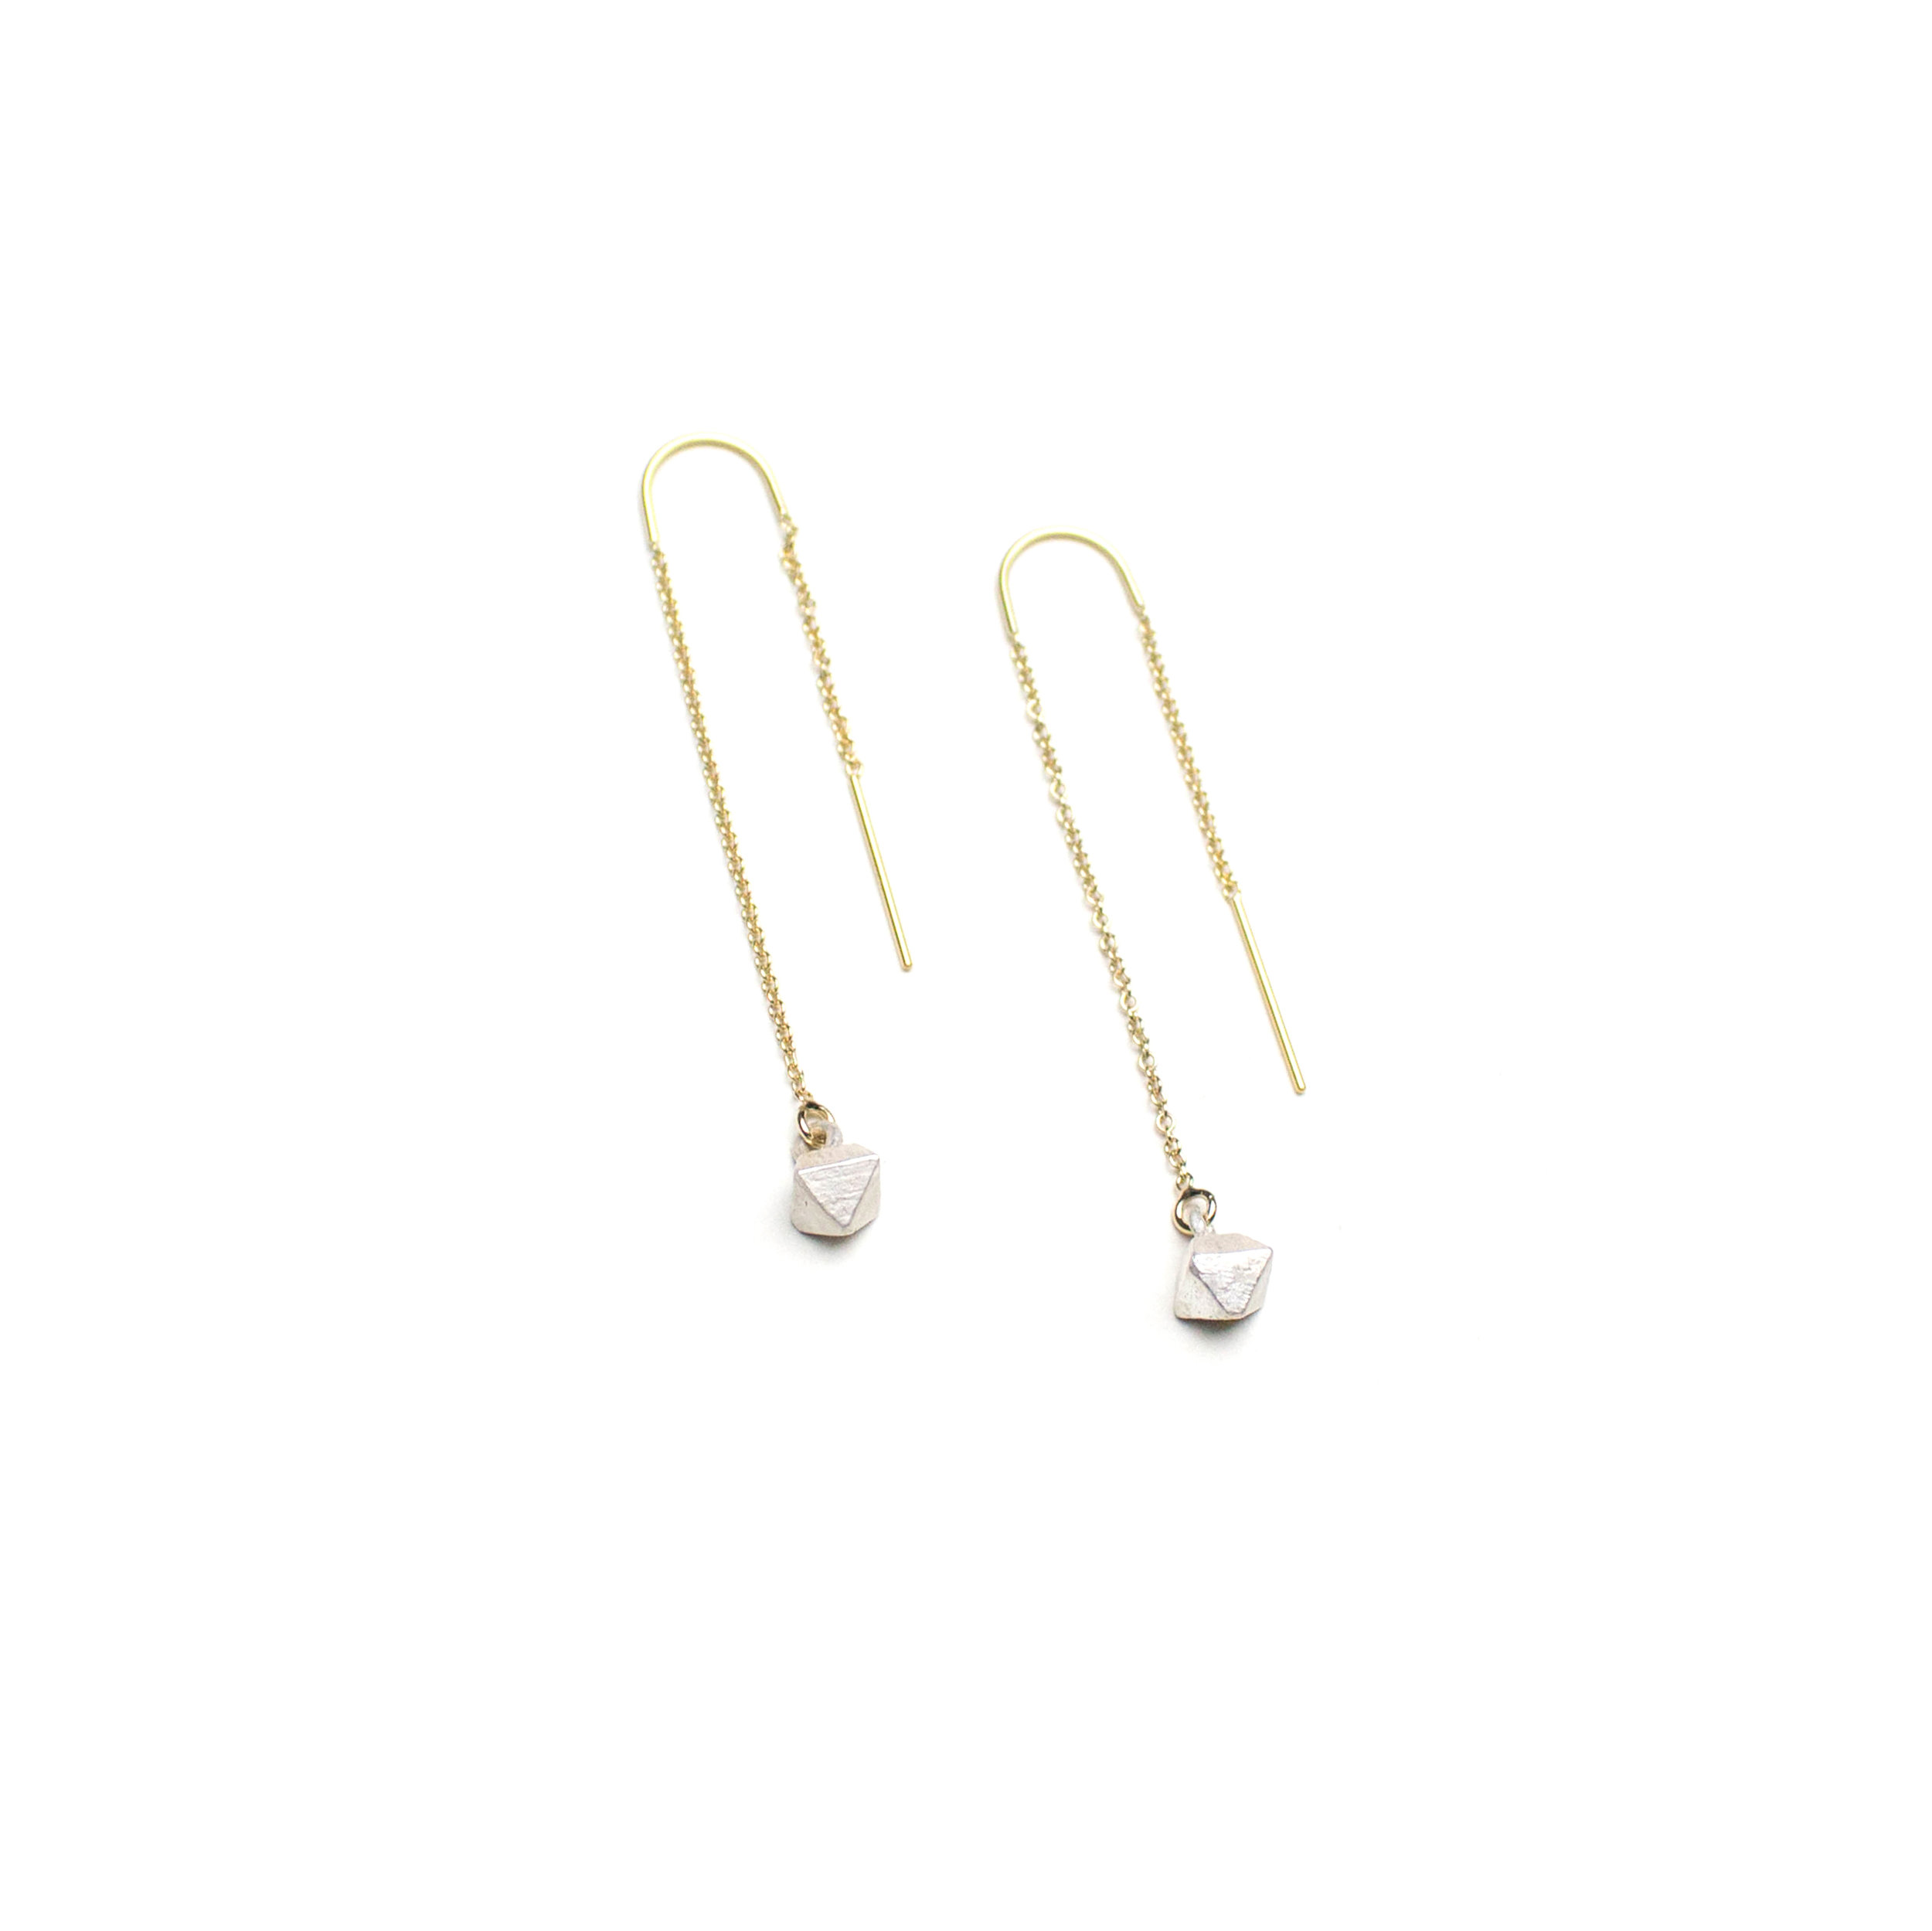 012-Silver-Raw-Threader-Earrings-Ethical-Jewelry-Bay-Area-Olivia-Shih.jpg